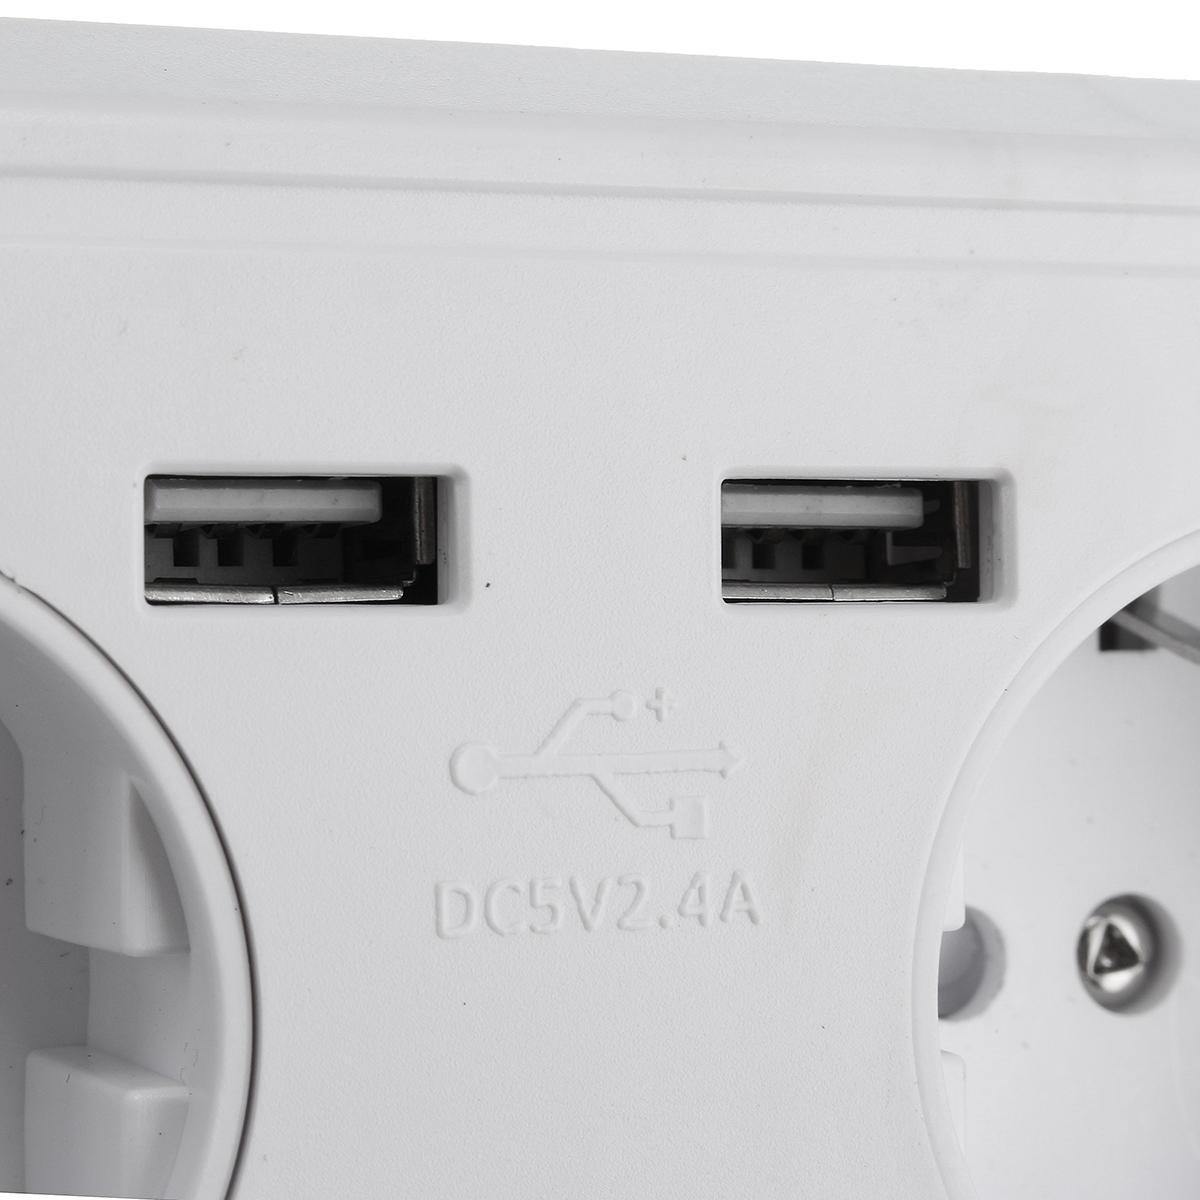 2.4A Dual USB Port EU Electric Wall Charger Station Socket Adapter Power Outlet